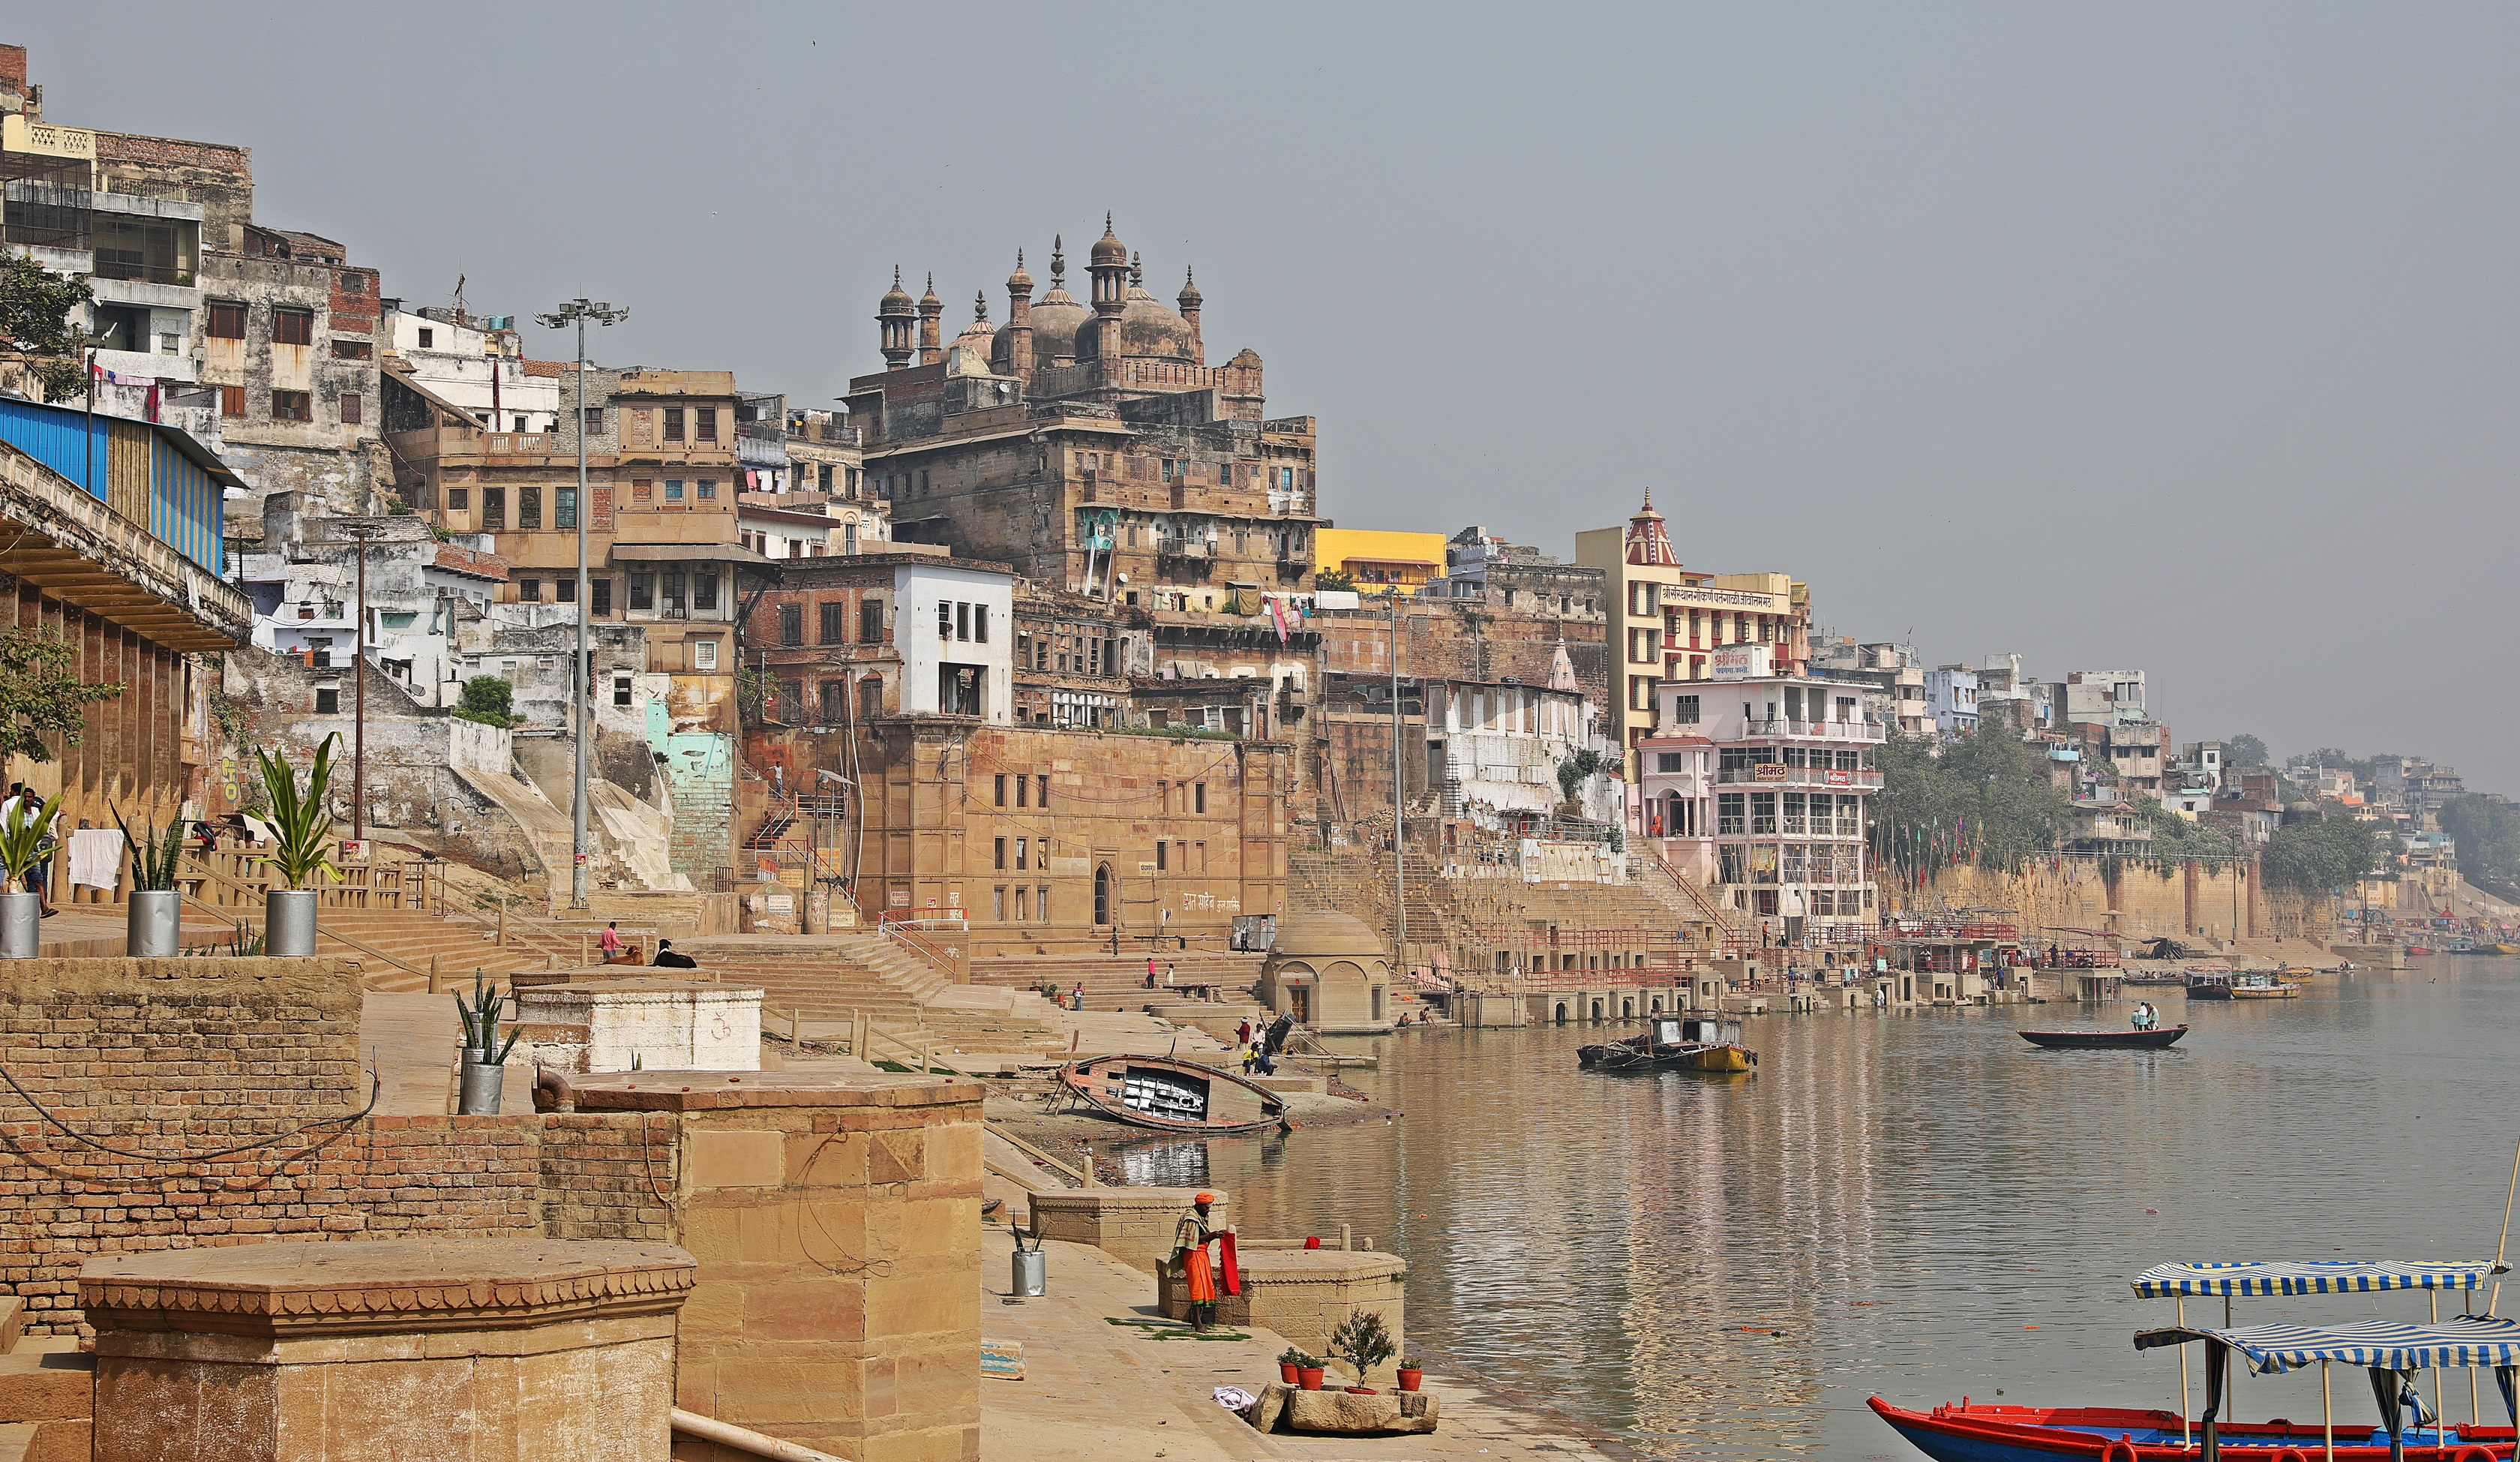 Ghats along the Ganges, Varanasi